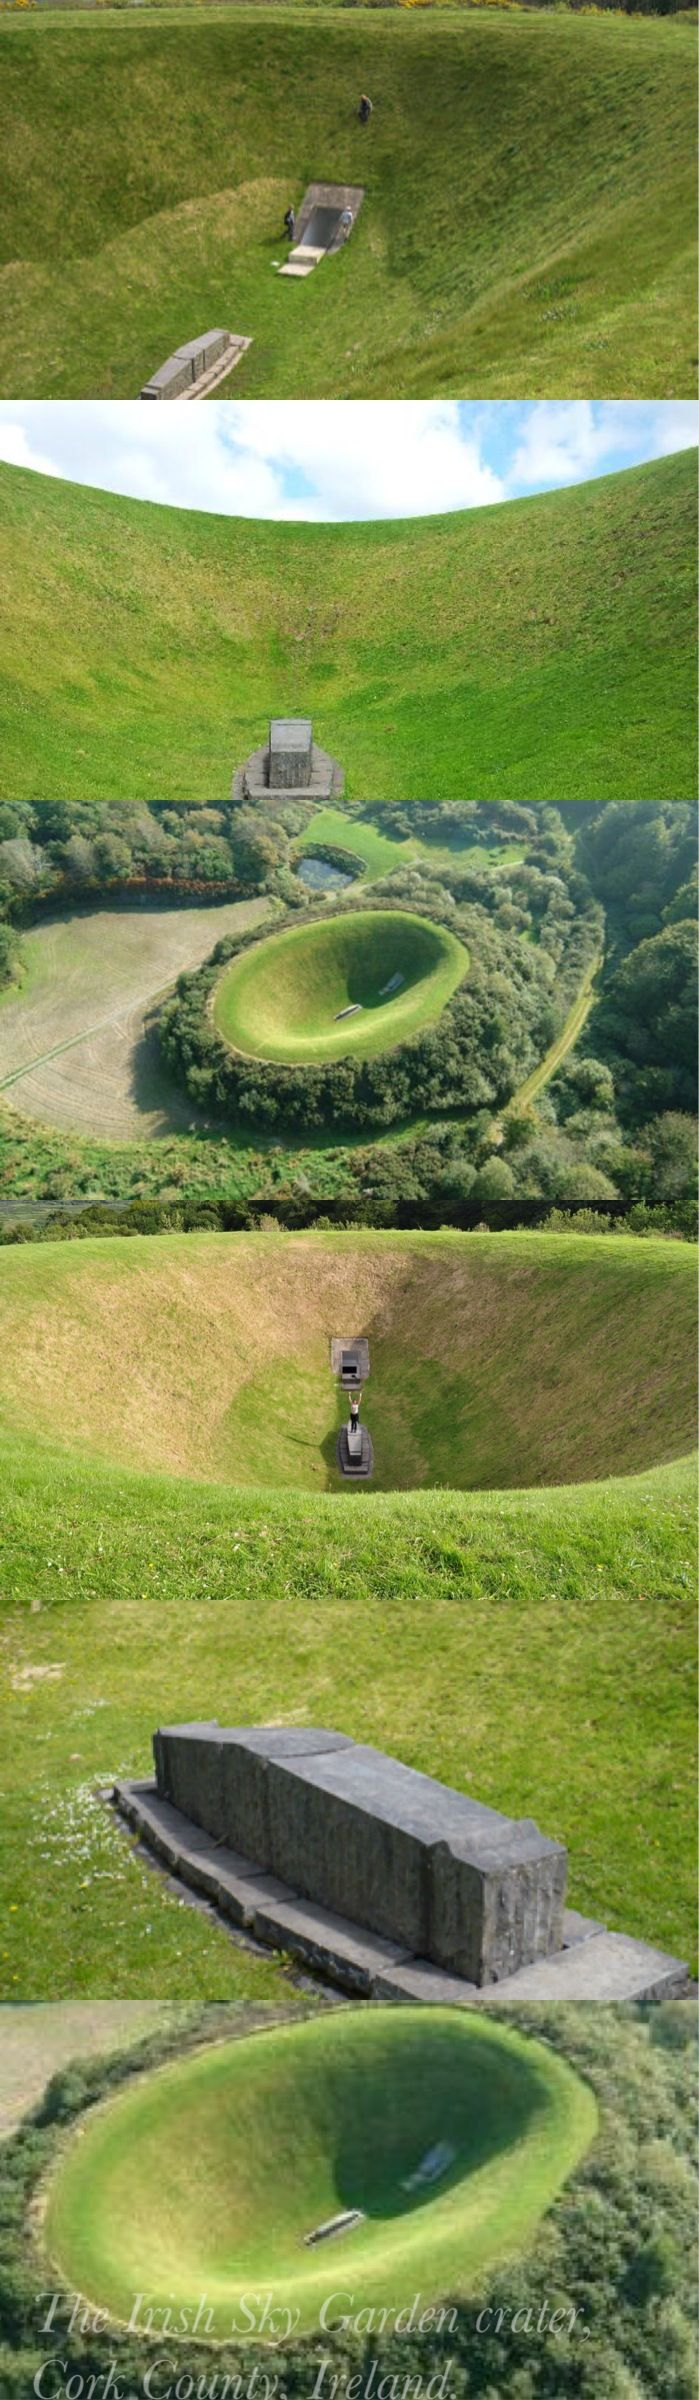 The Irish Sky Garden Crater by Turrell, is located on the ...